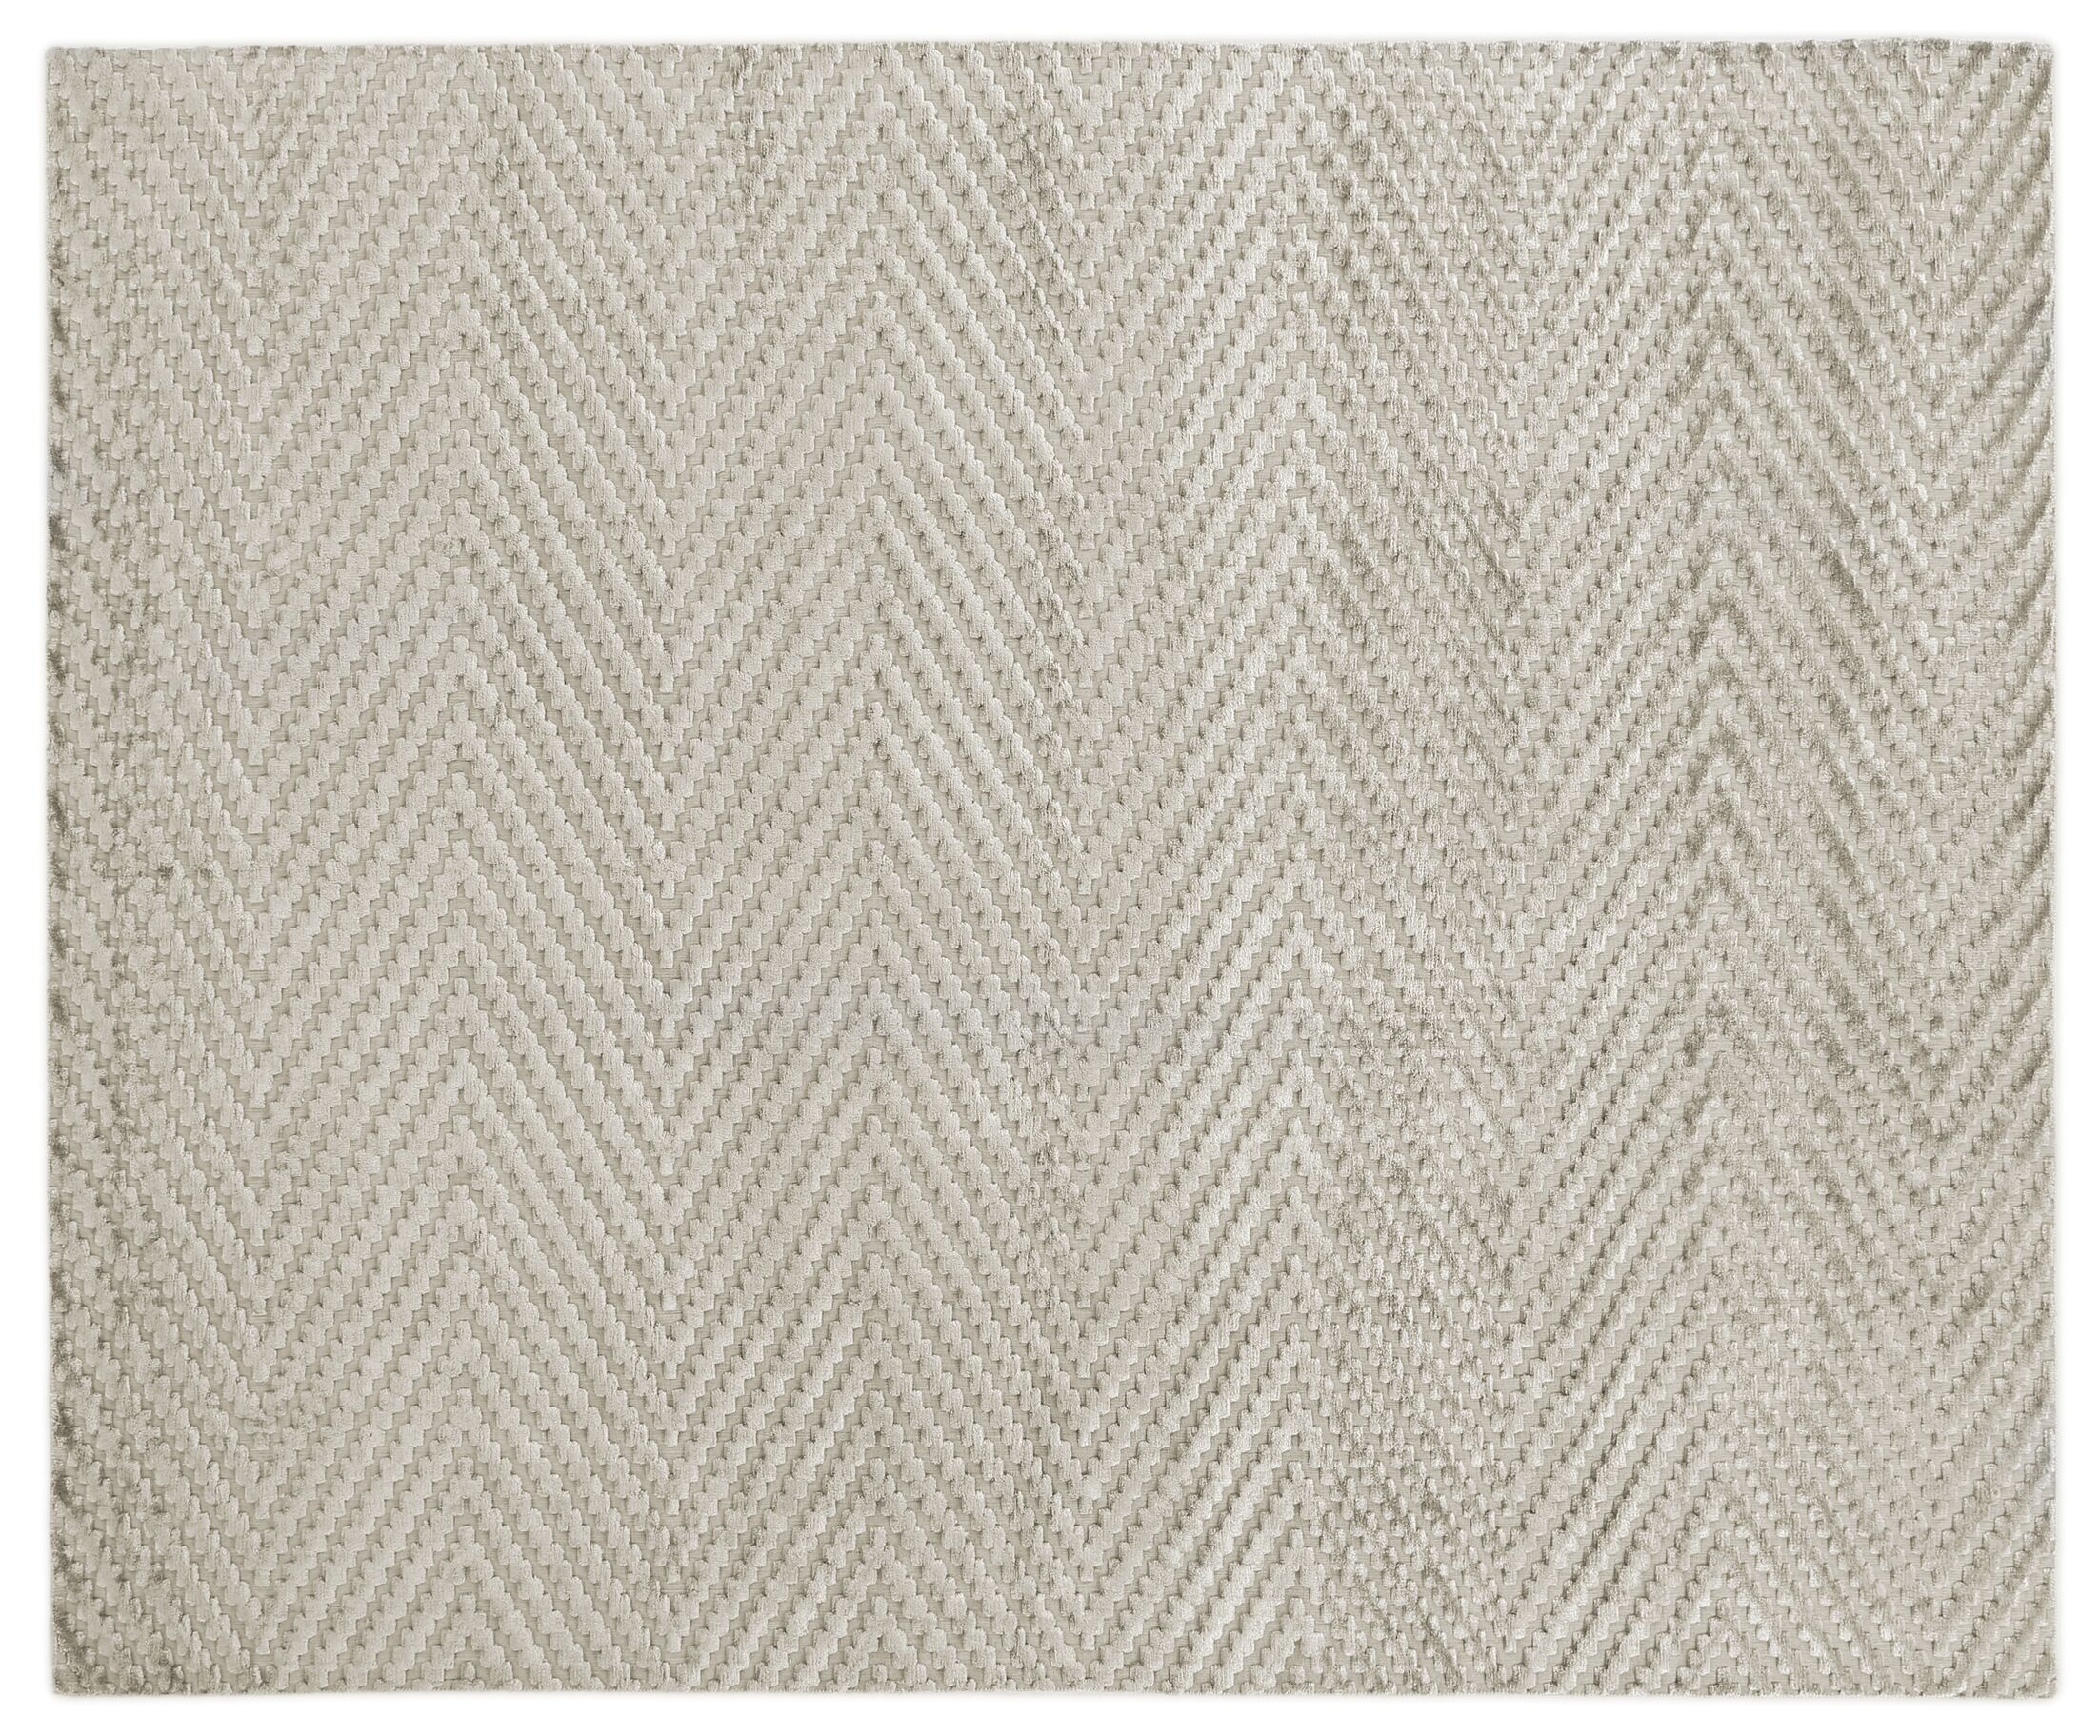 Kingsley Hand-Woven Silver Area Rug Rug Size: Rectangle 10' x 14'